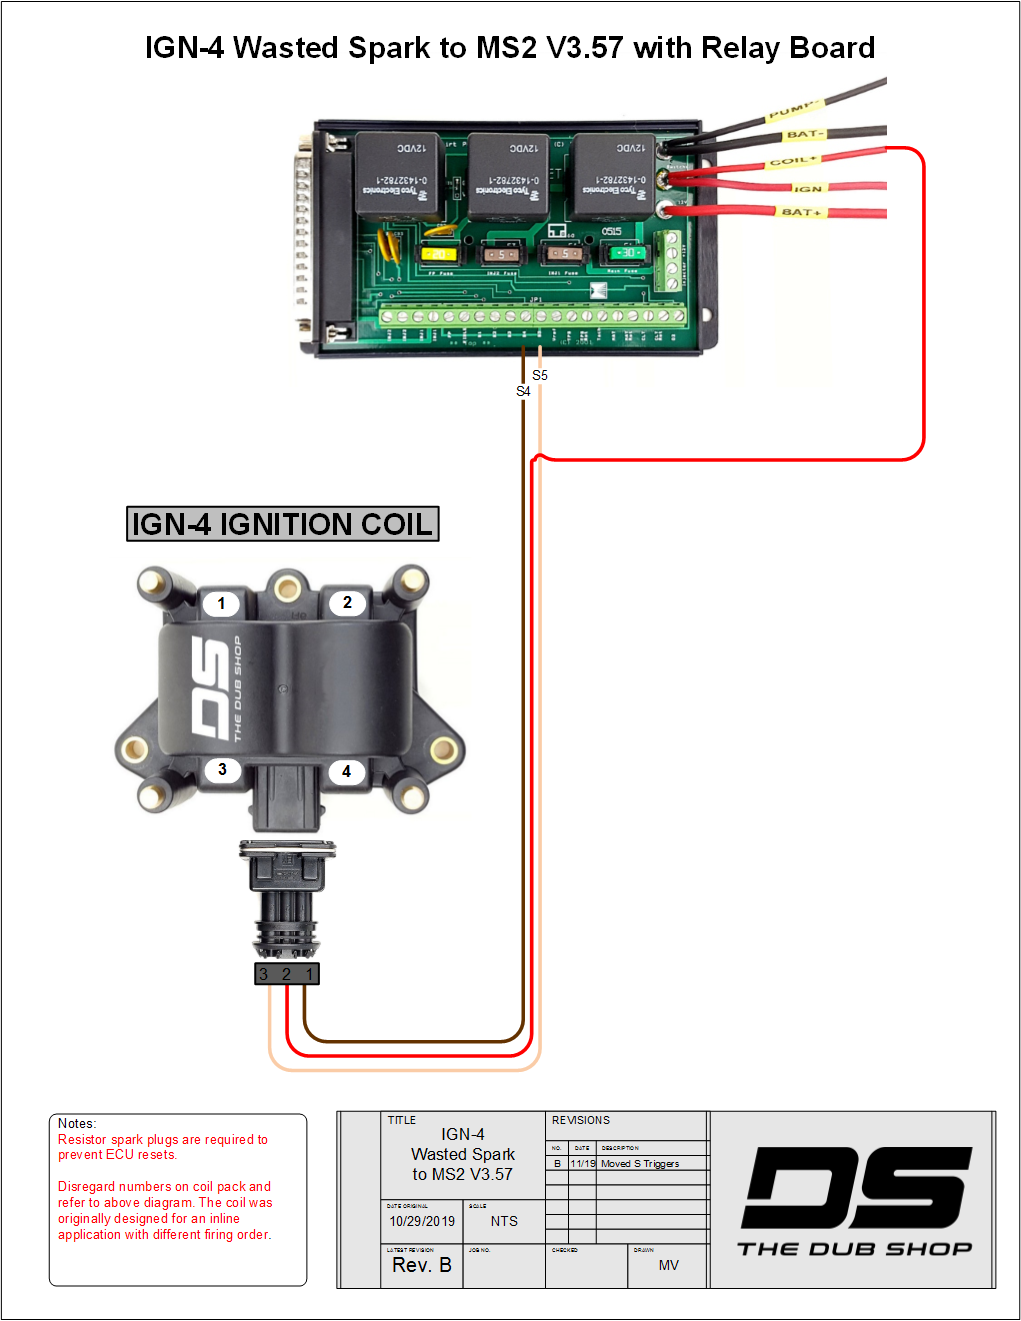 ms2-v357-relay-board-ign4-wasted-spark-revb.png